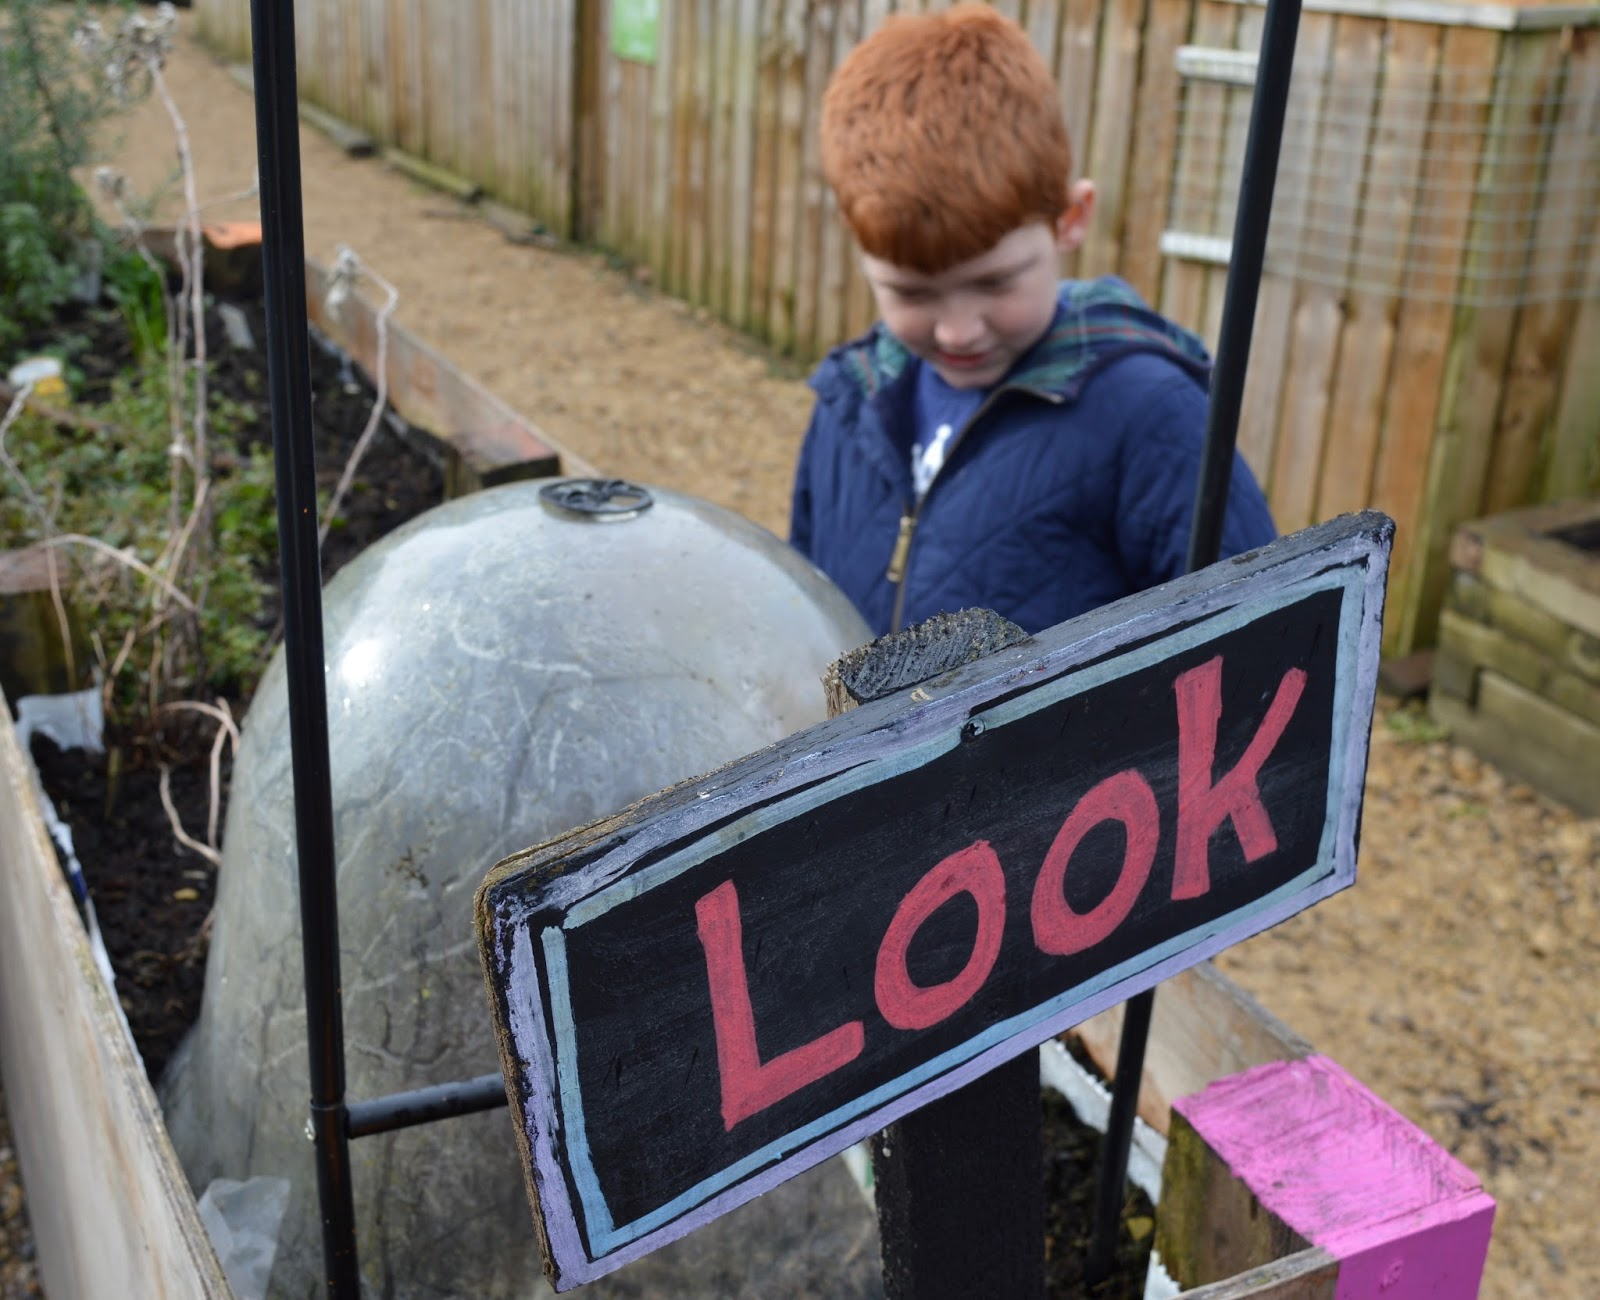 Ouseburn Farm Newcastle | A FREE Place to Take the Kids - sensory garden look